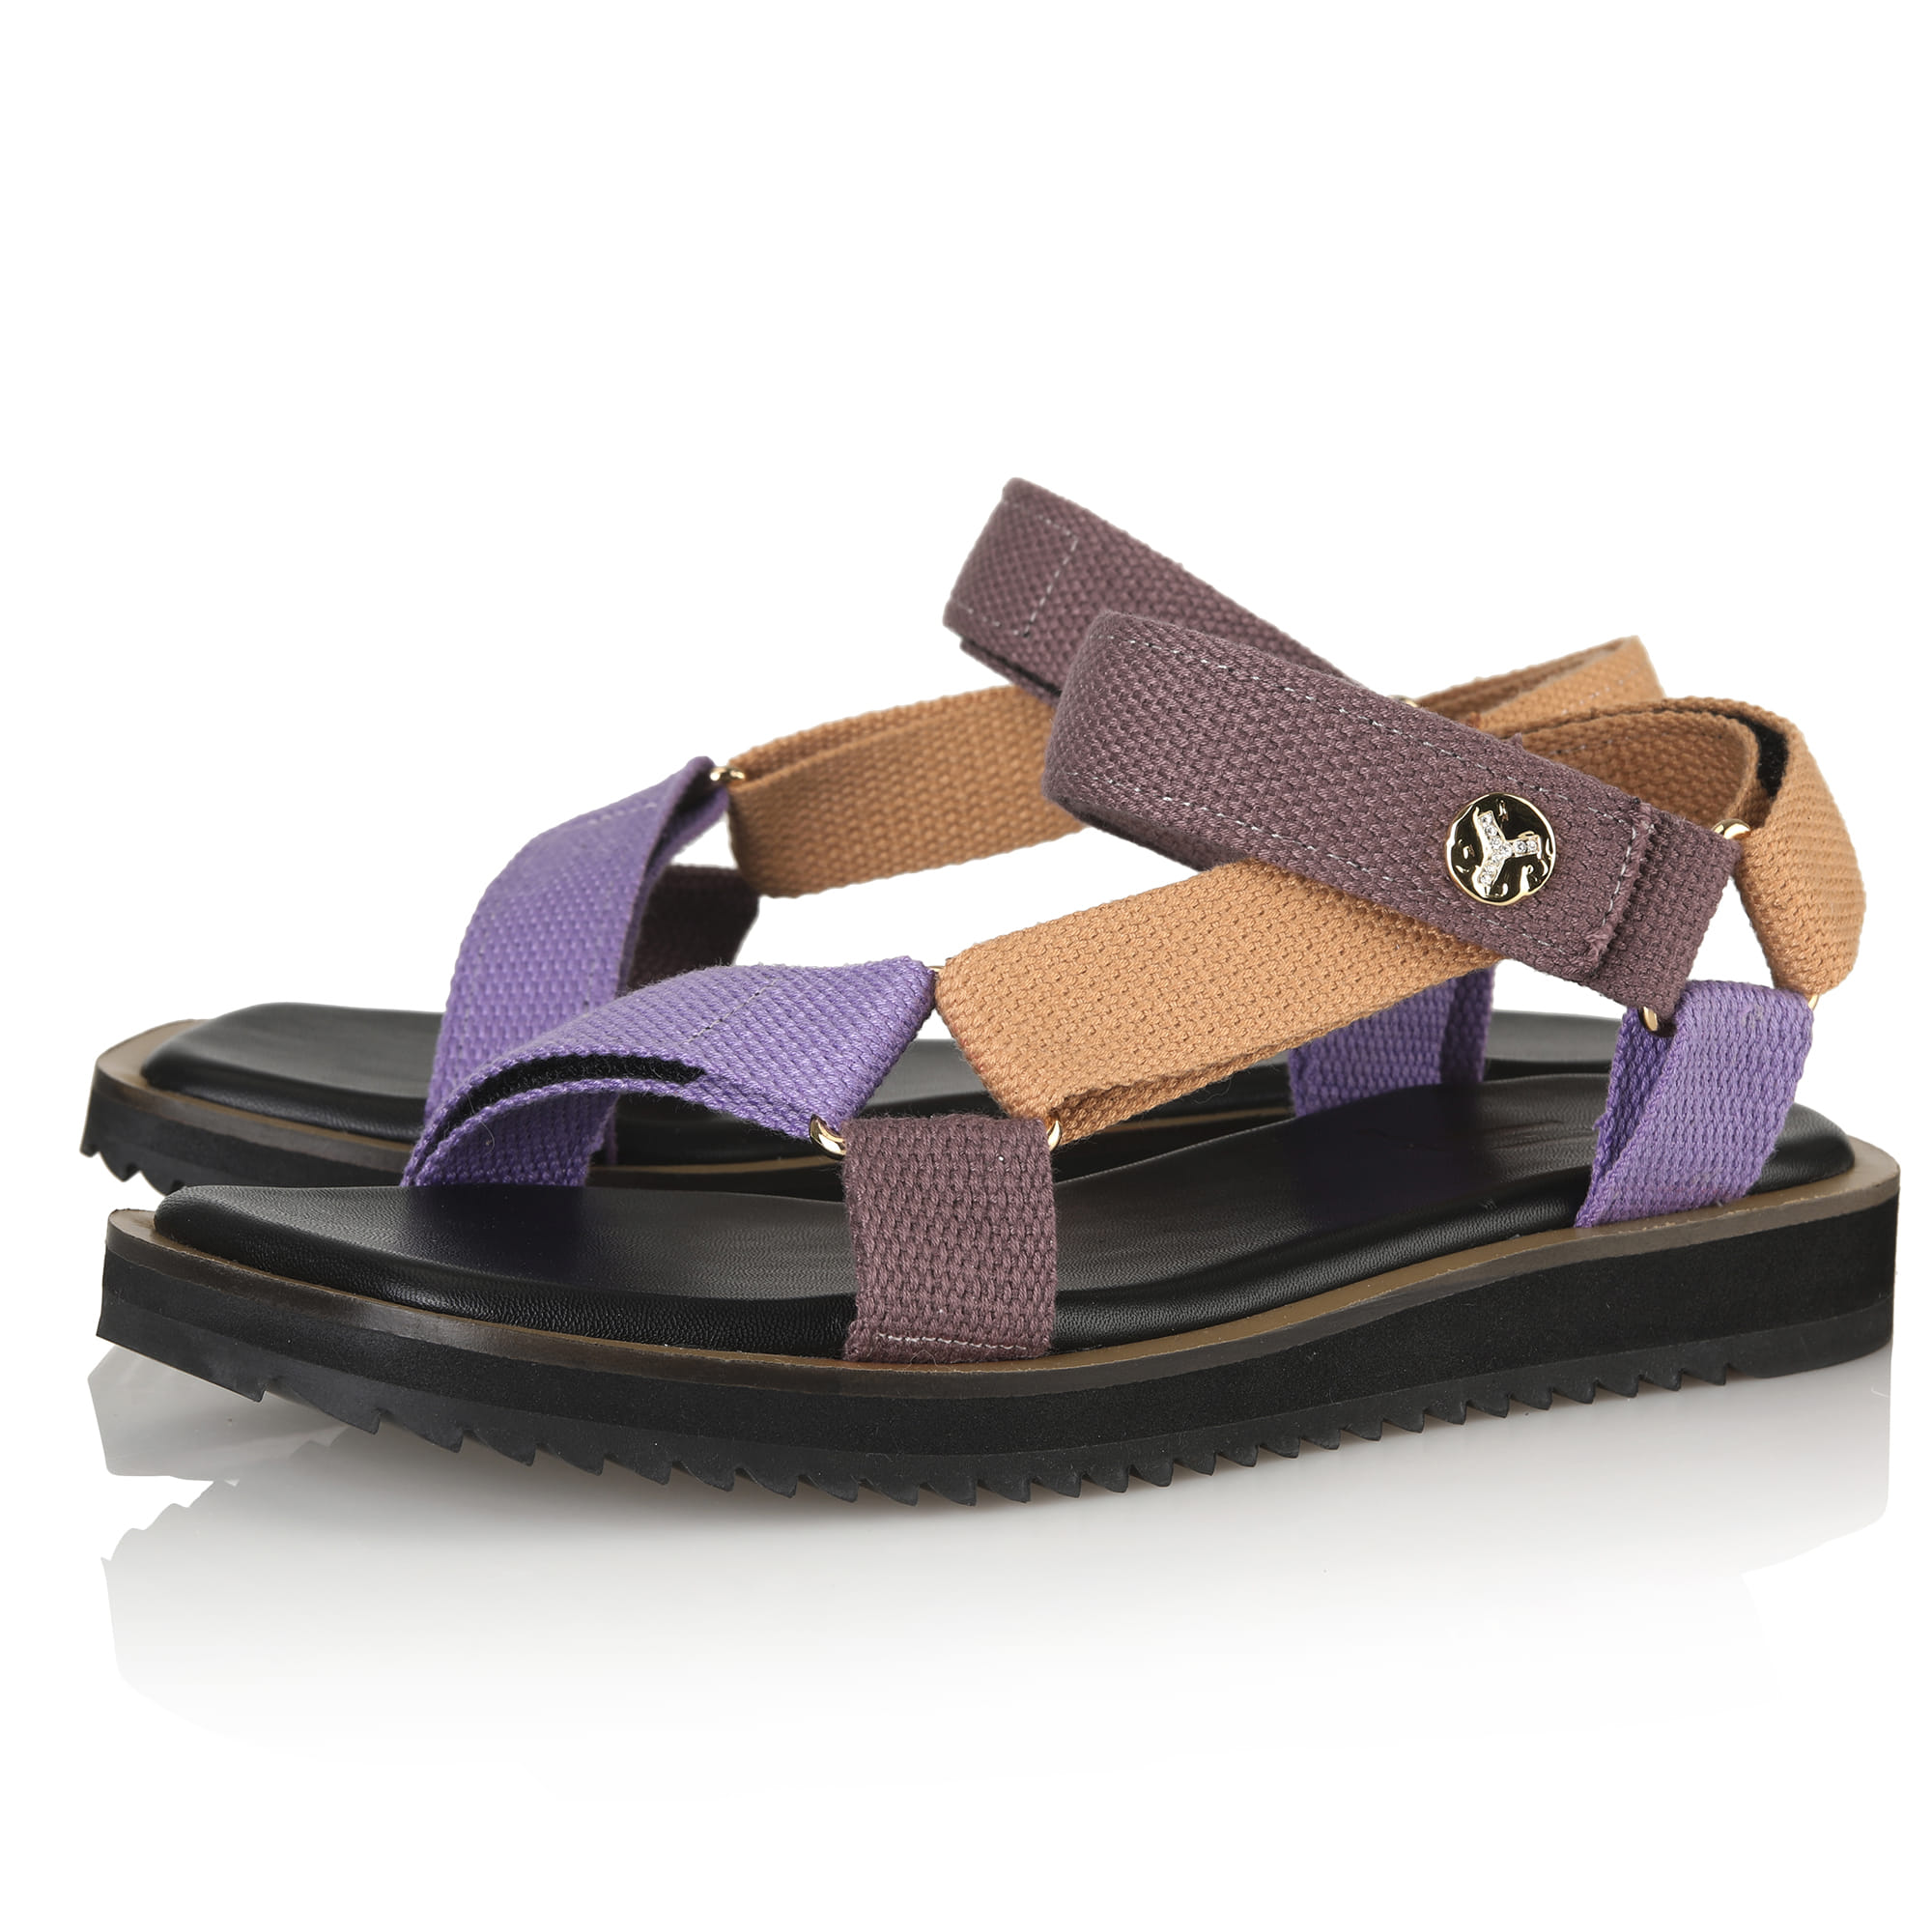 Y.02 Moly Strap sandals / PURPLE+MUSTARD